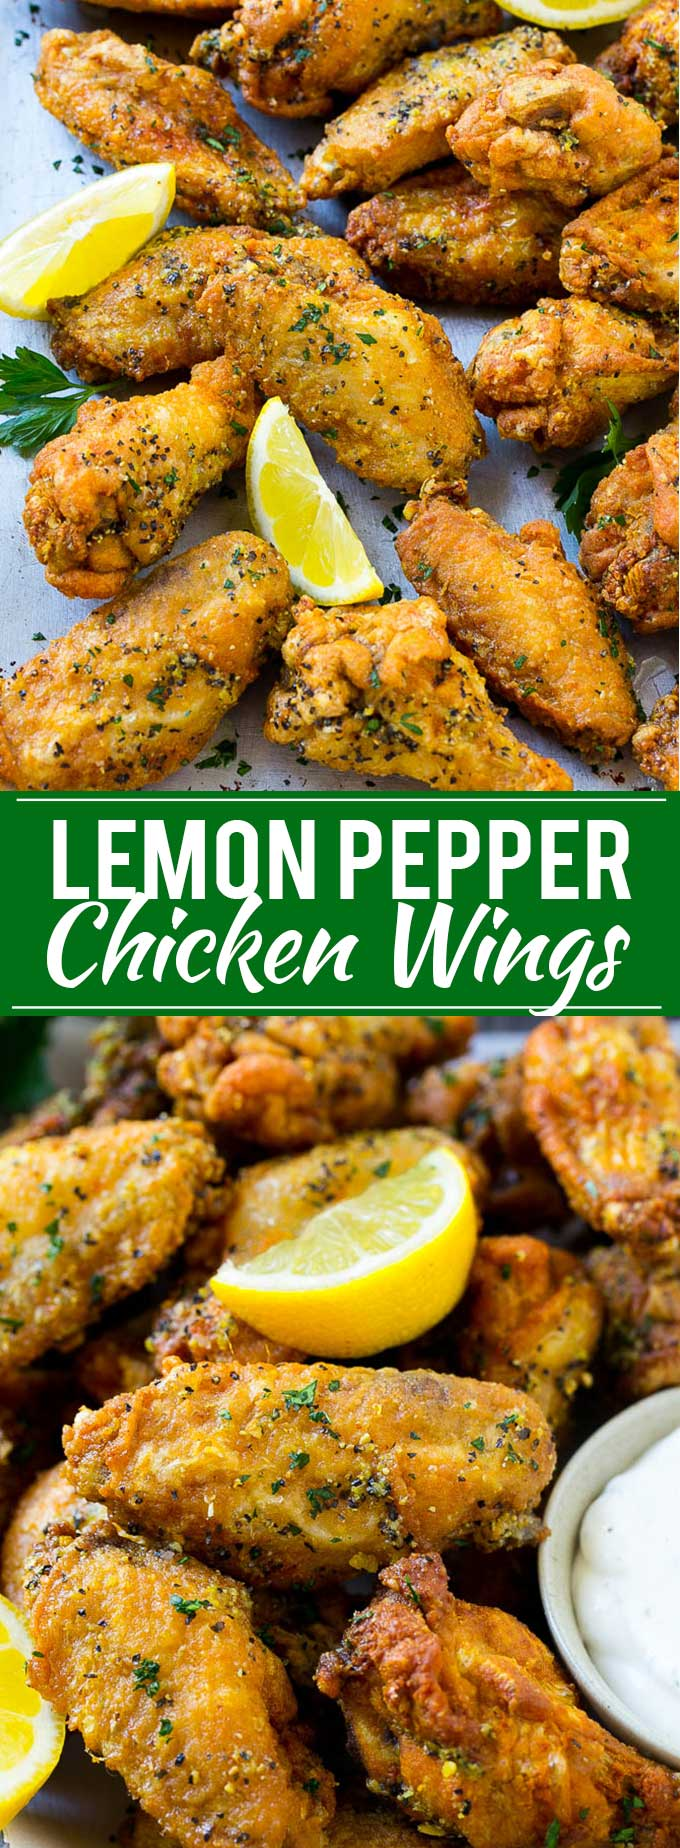 Lemon Pepper Chicken Wings | Fried Chicken Wings | Lemon Pepper Wings